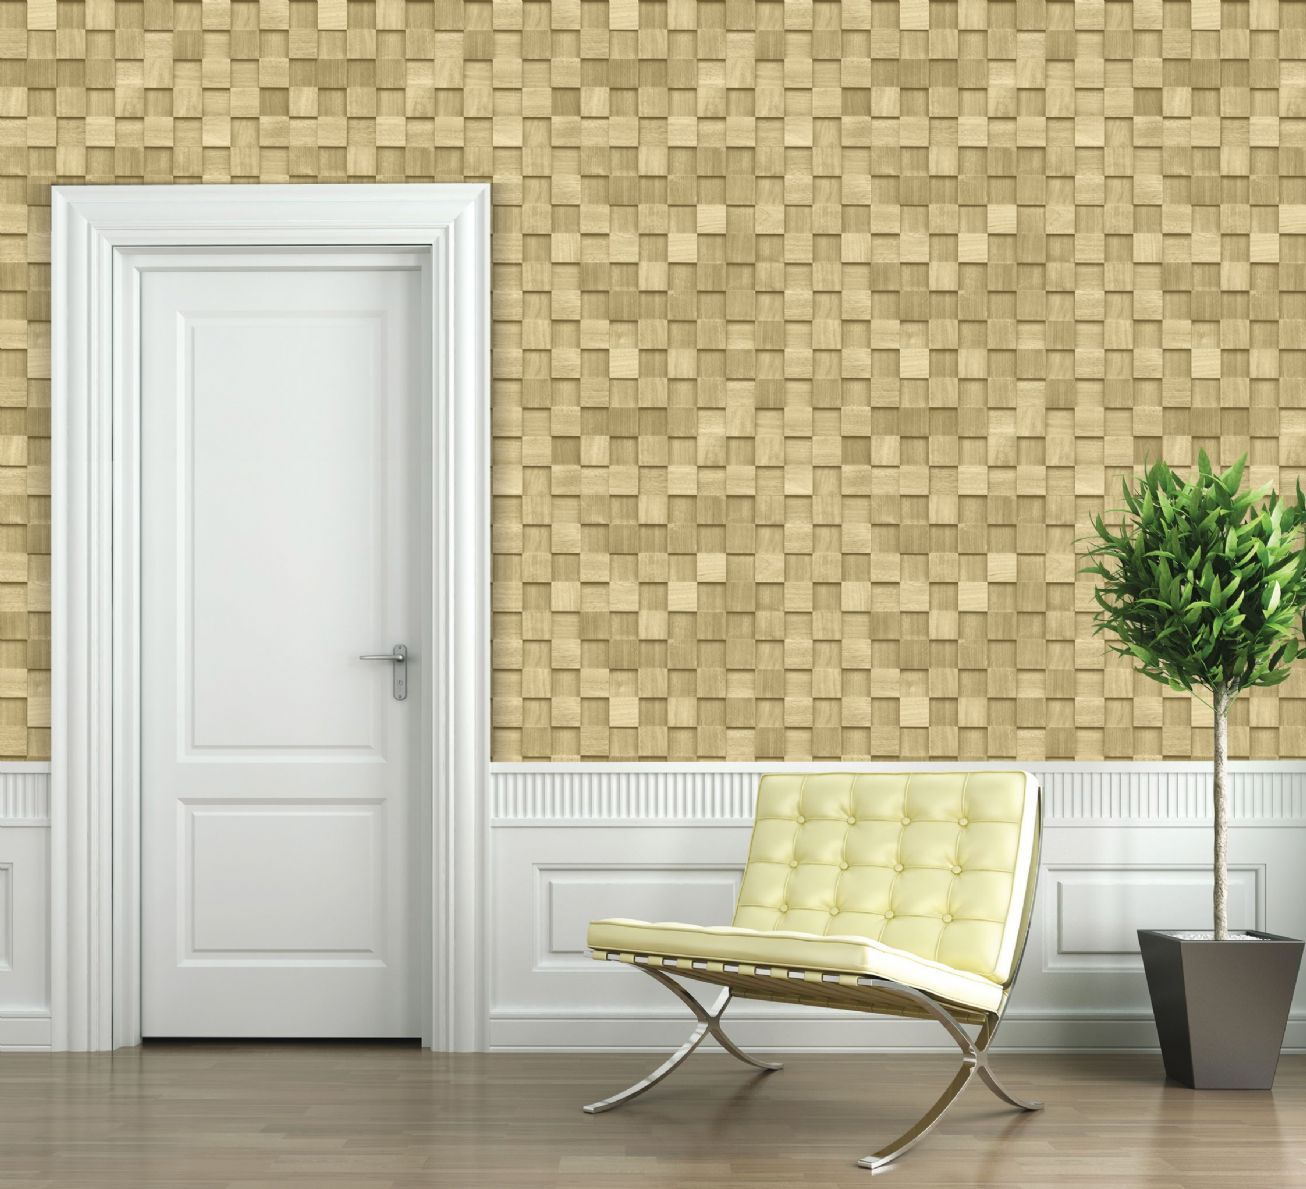 Stick On Tile Decorations Do It Yourself Peel And Stick Wall Tiles For Your Space Decoration